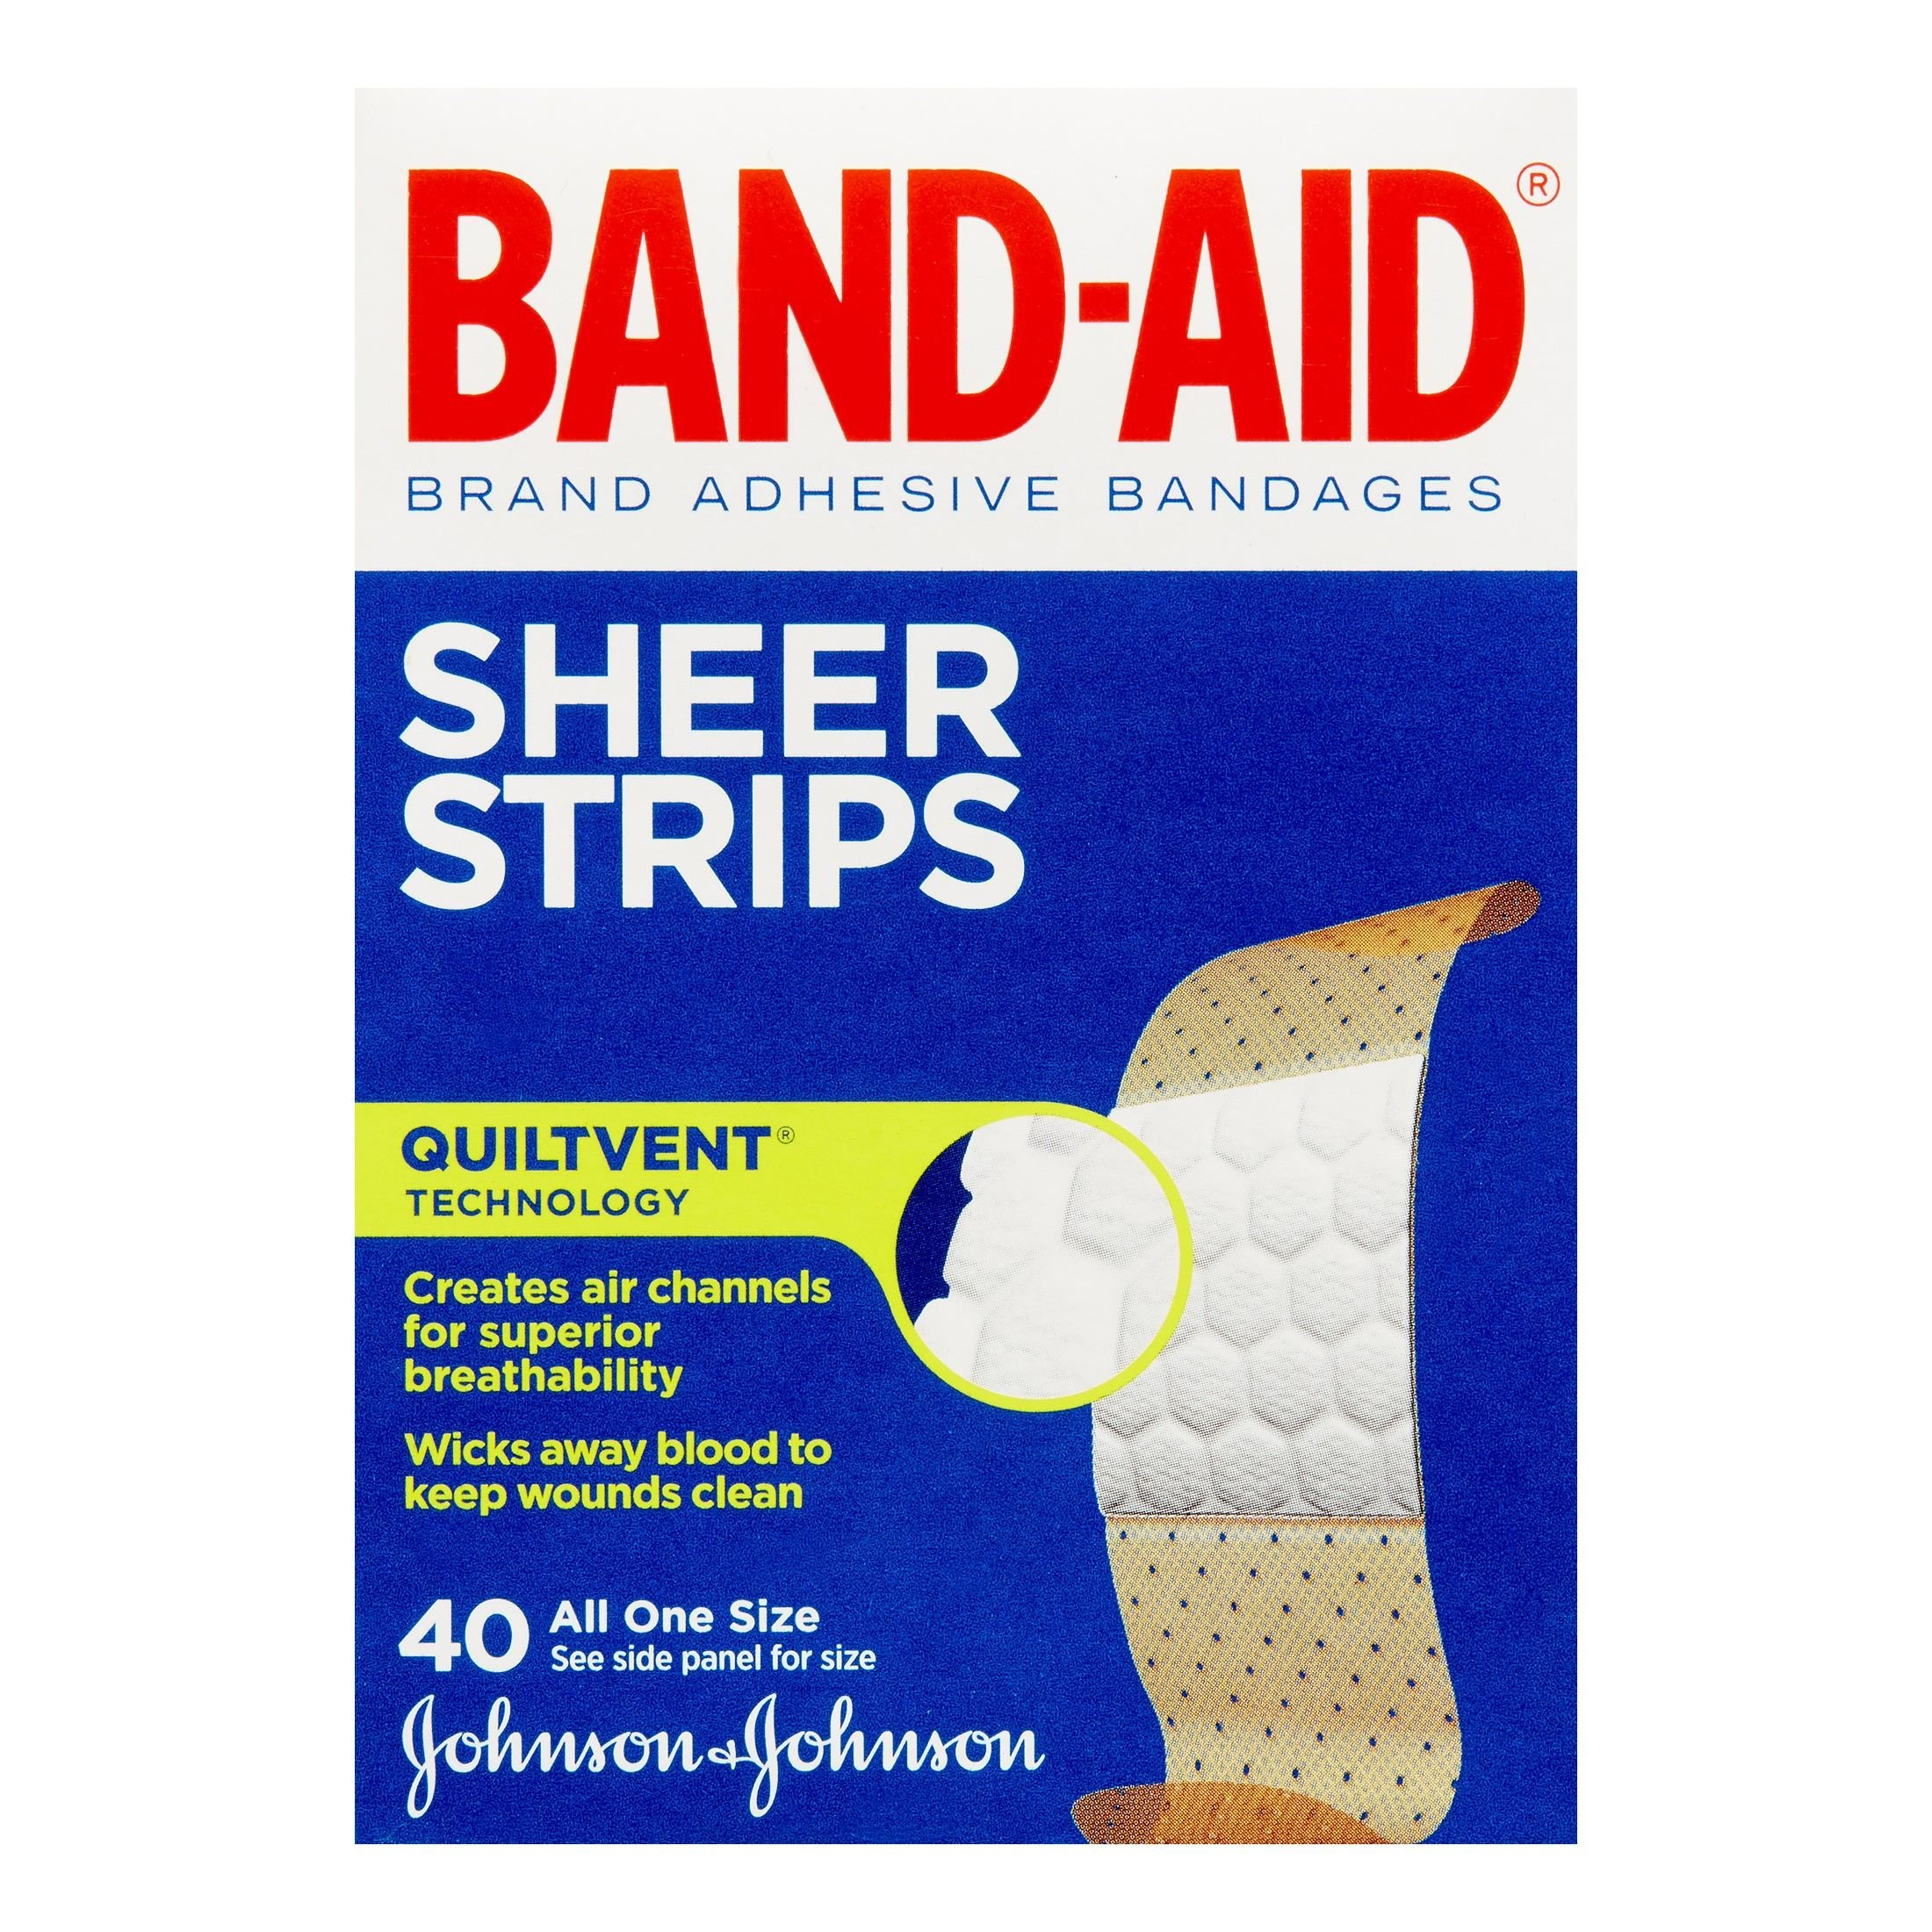 Band-Aid Brand Adhesive Bandages, Sheer Strips, Assorted, 40 Count (Pack of 4)(Packaging May Vary)